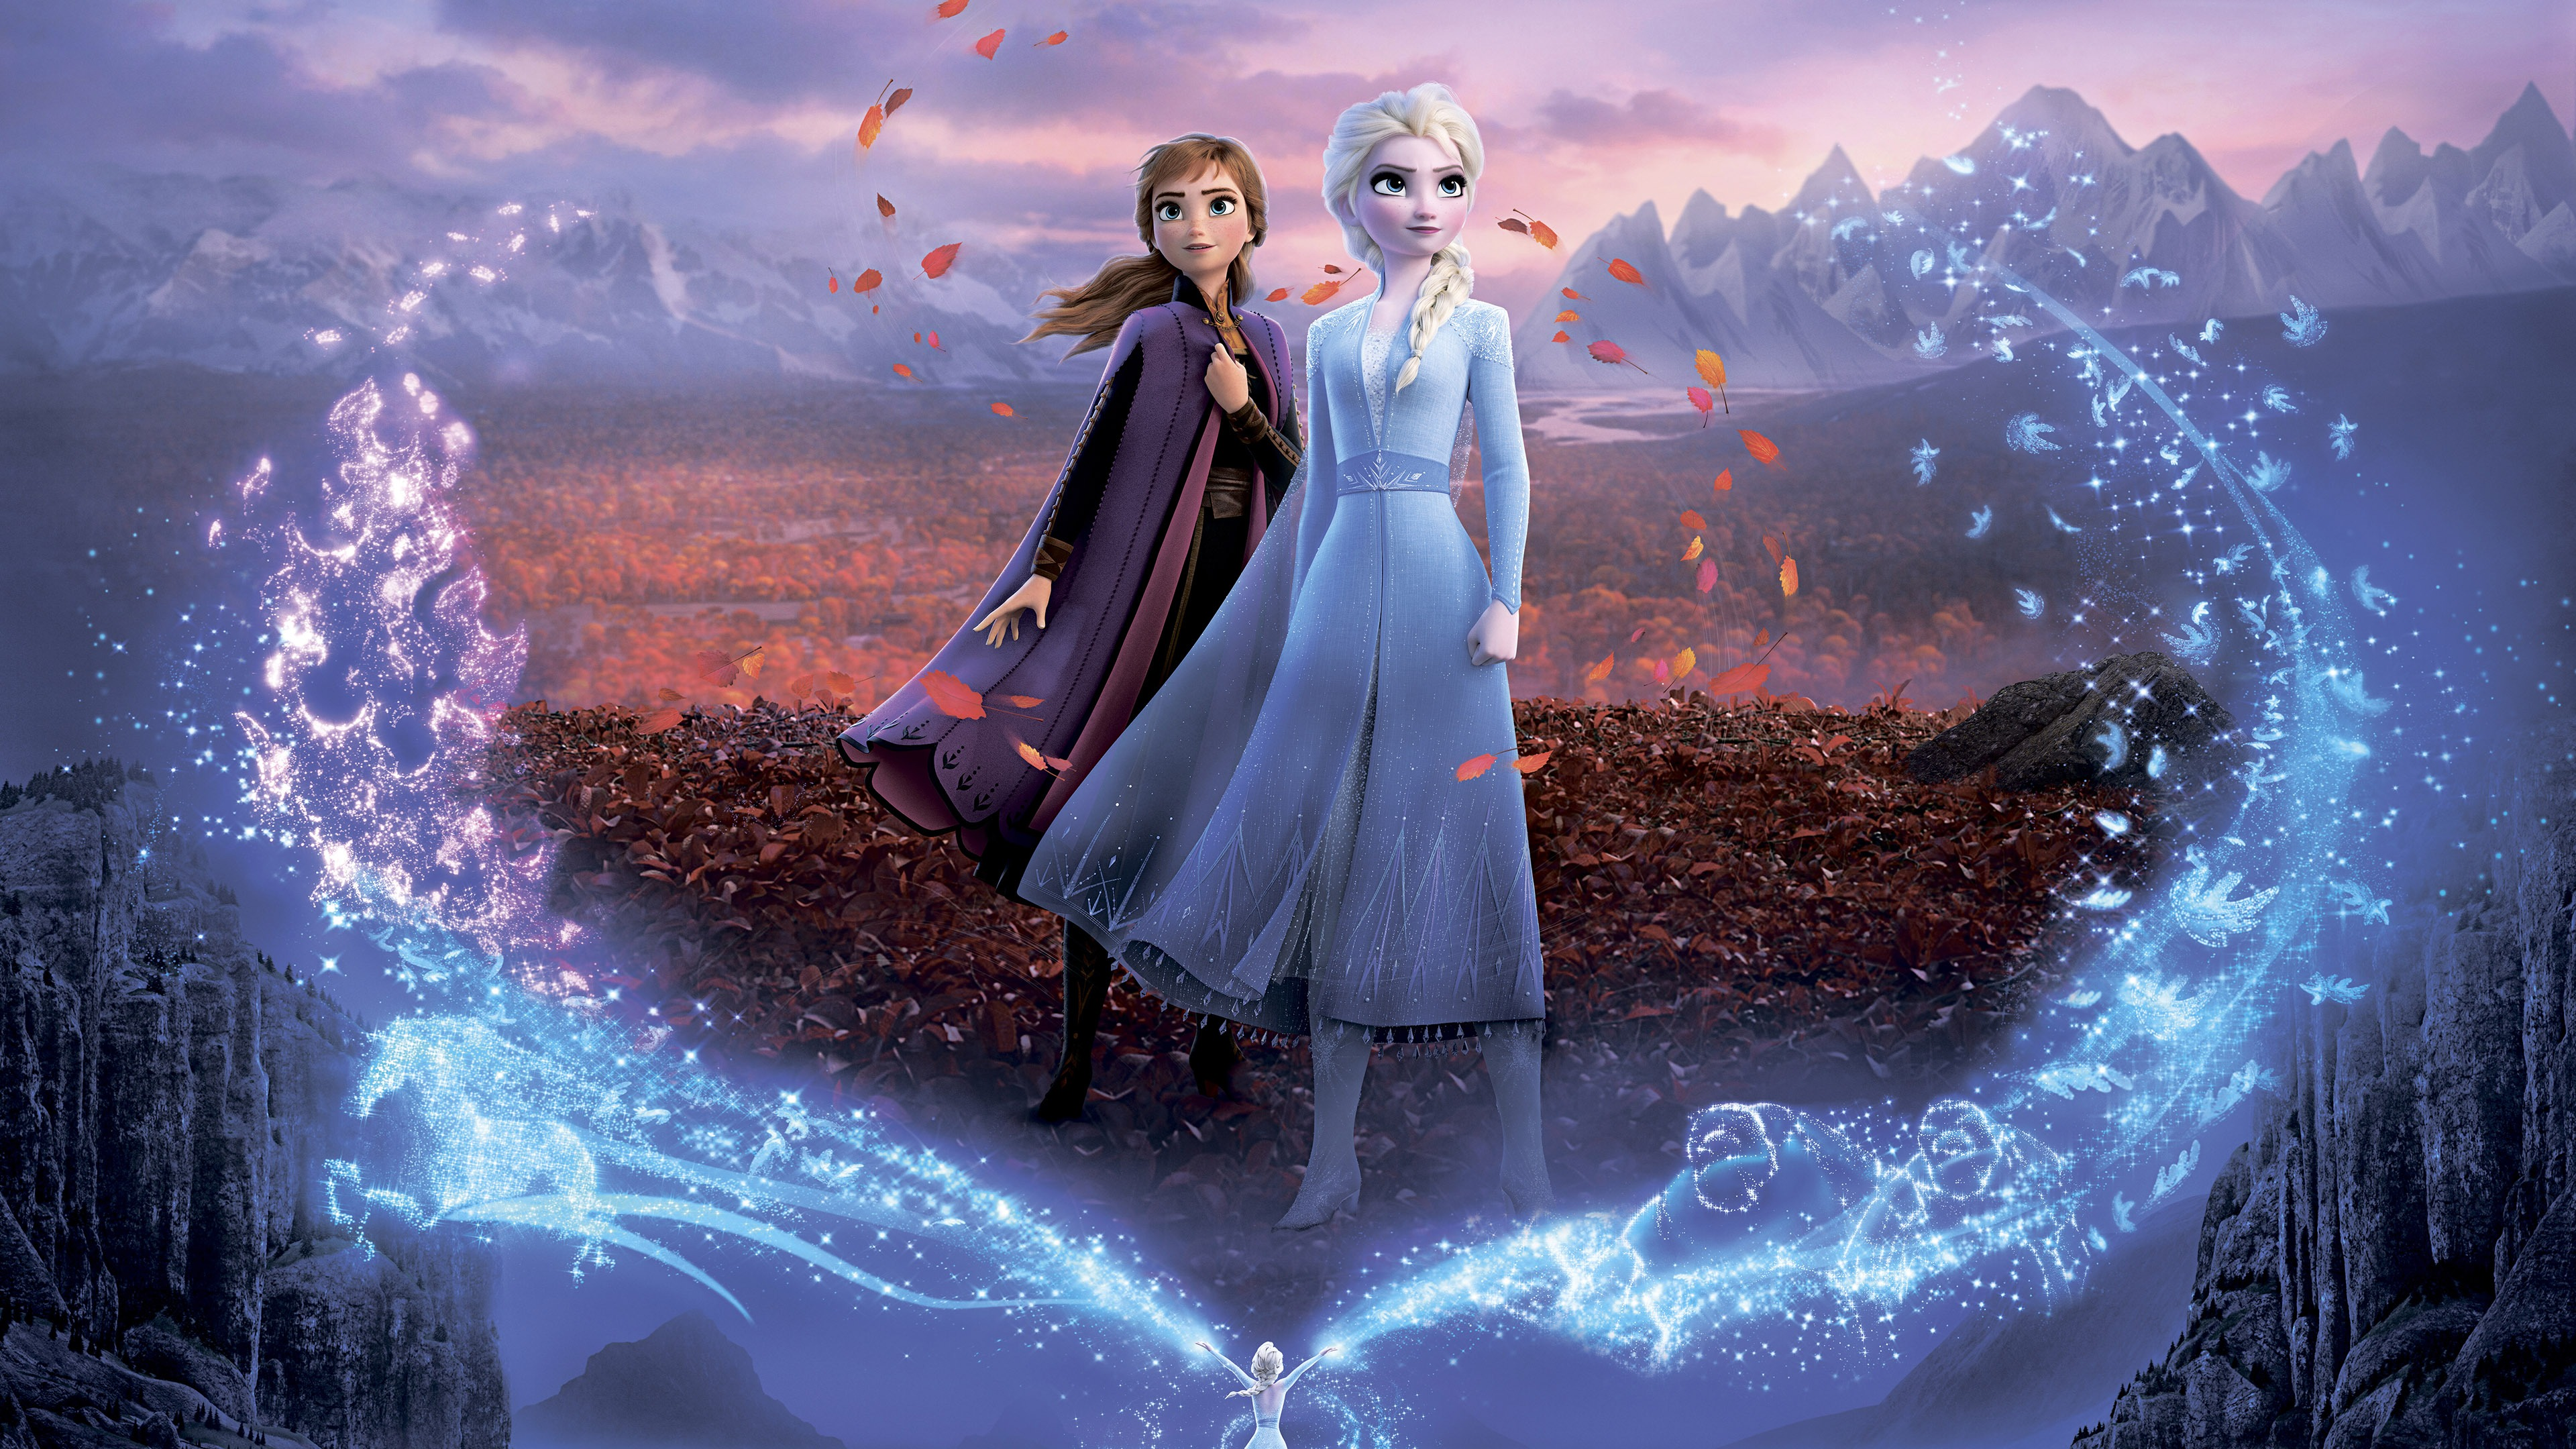 Frozen 2 Movie High Quality Desktop Wallpaper HD 4K